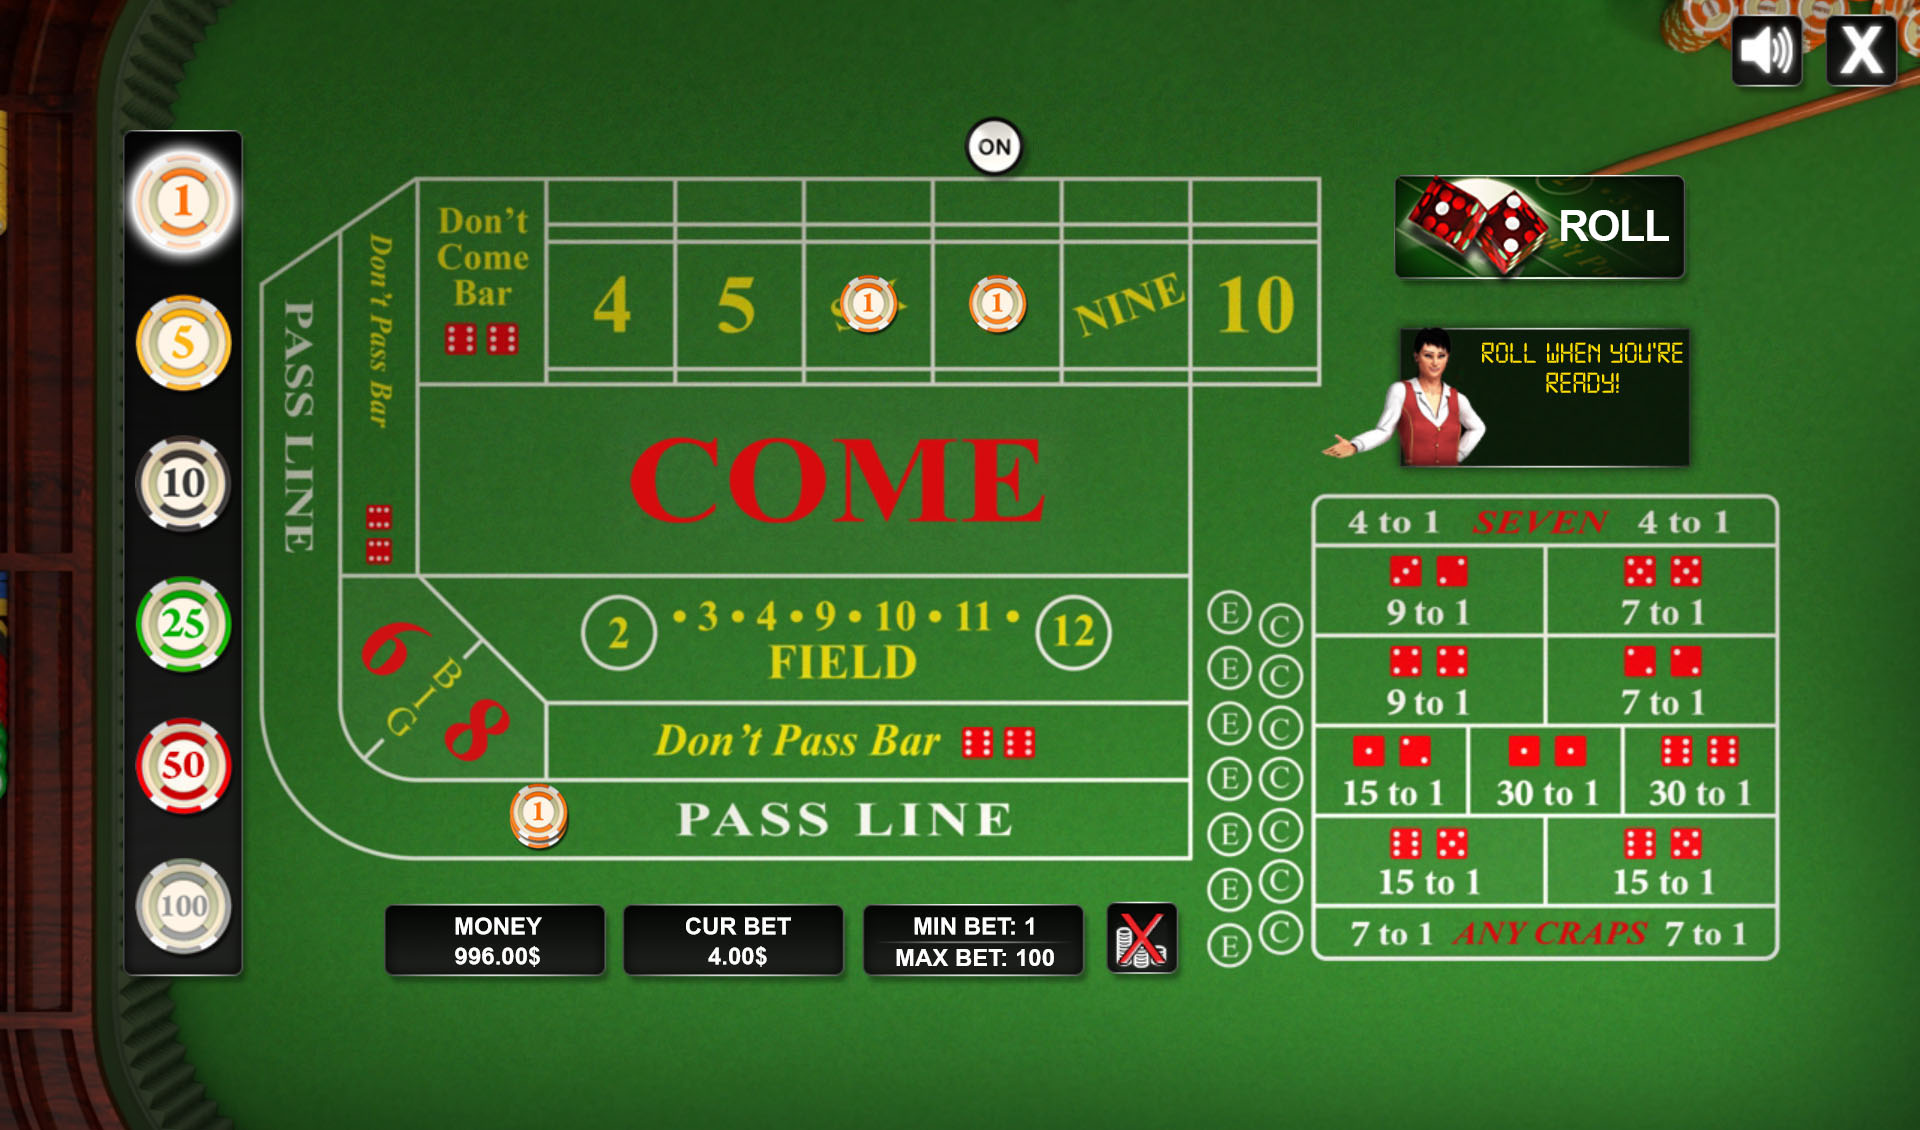 HTML5 Game: Craps - Code This Lab srl